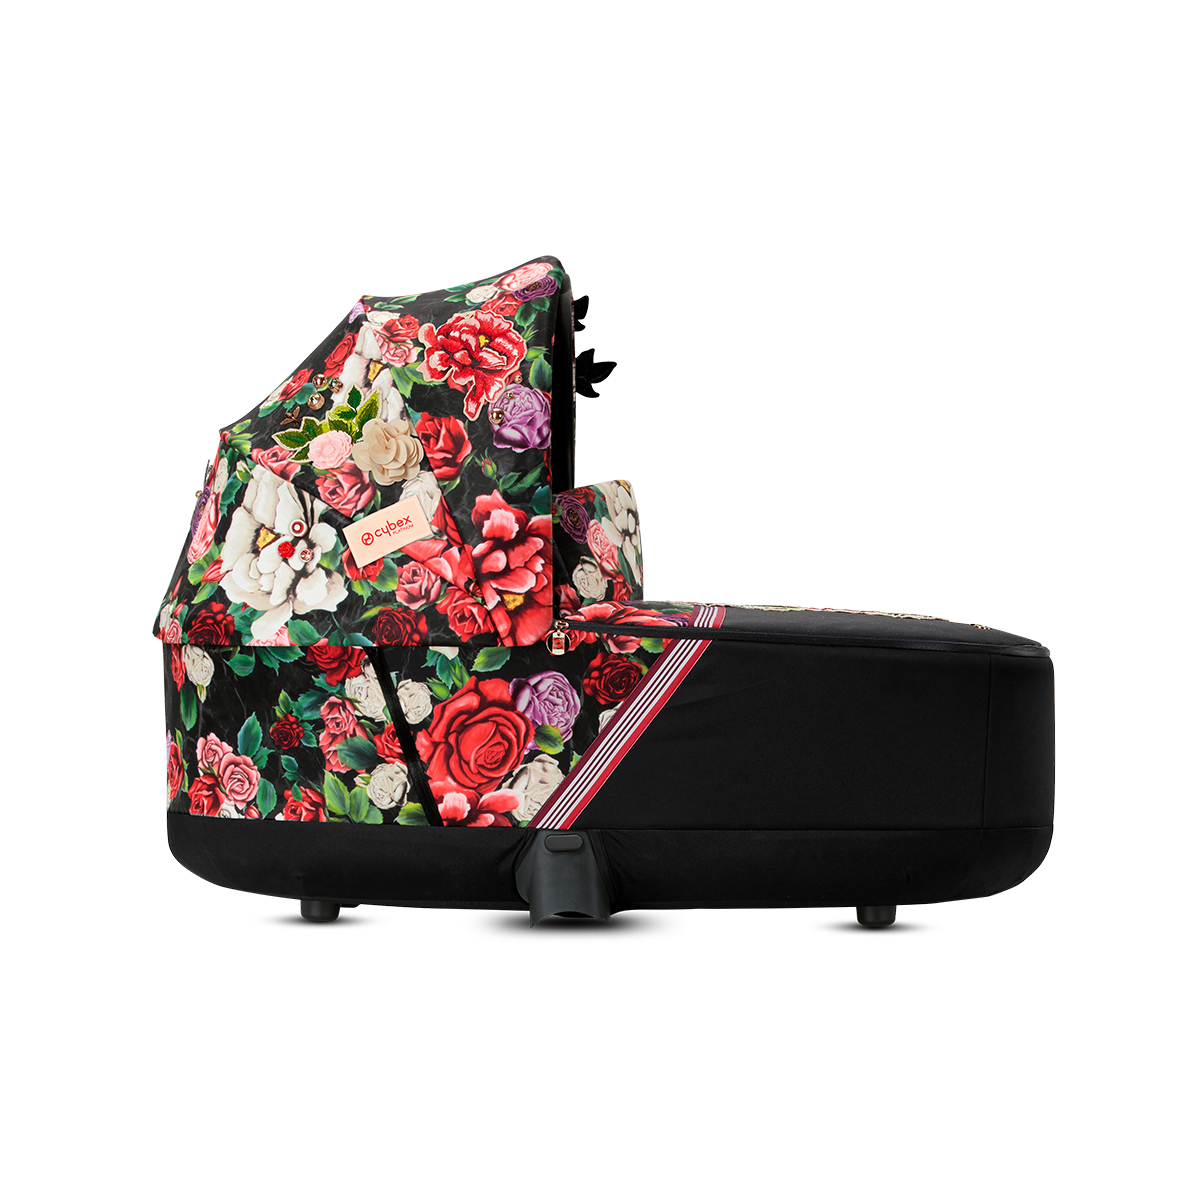 Cybex Priam Lux Carry Cot in Dark Spring Blossom